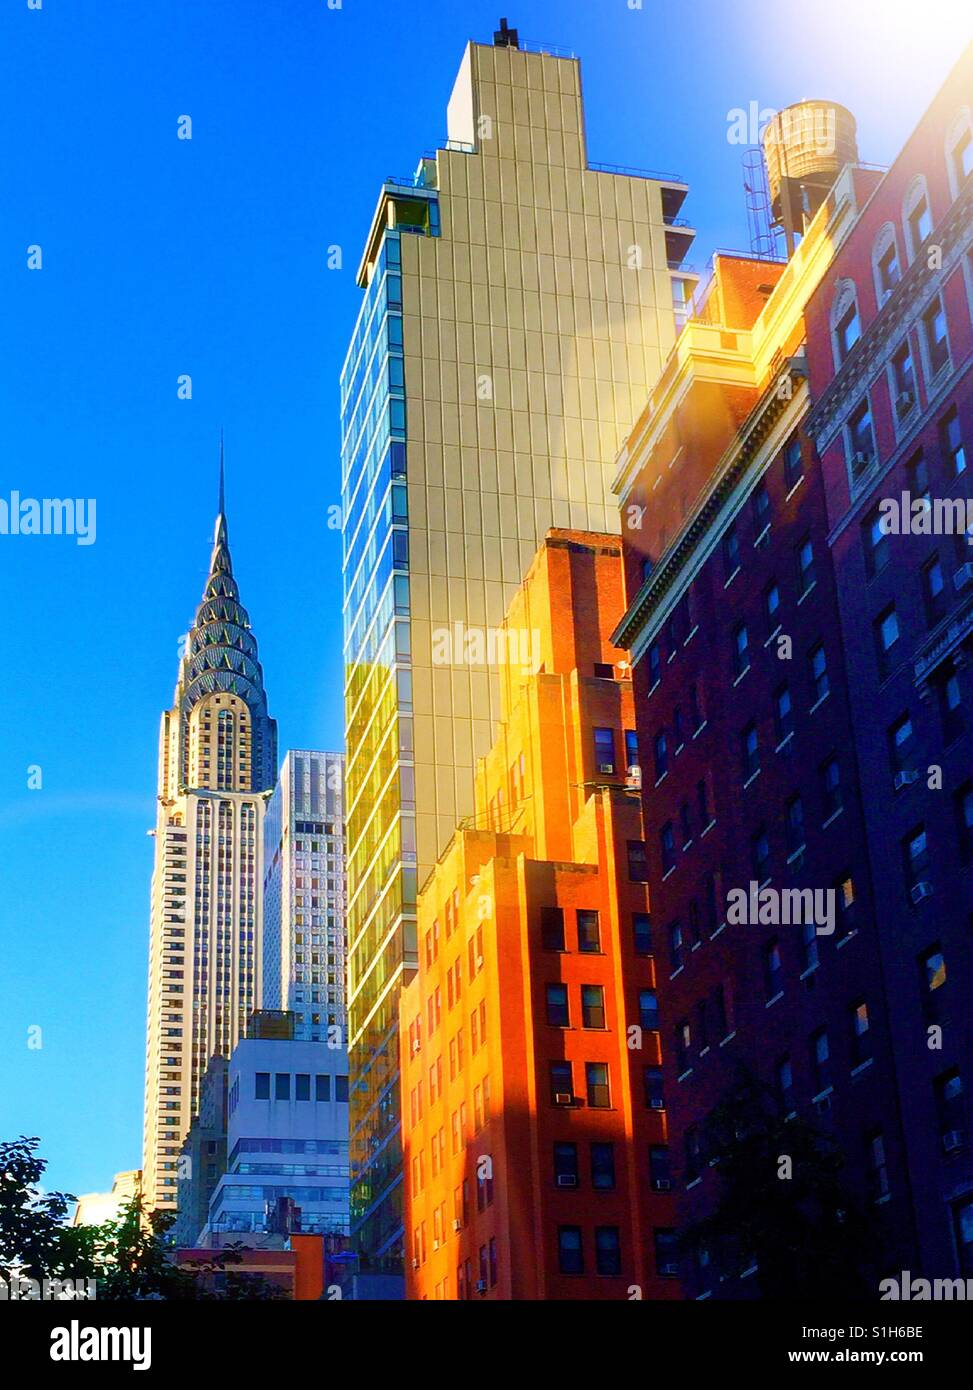 View of the Chrysler building looking north on Lexington Ave., Manhattan, NYC, USA. - Stock Image